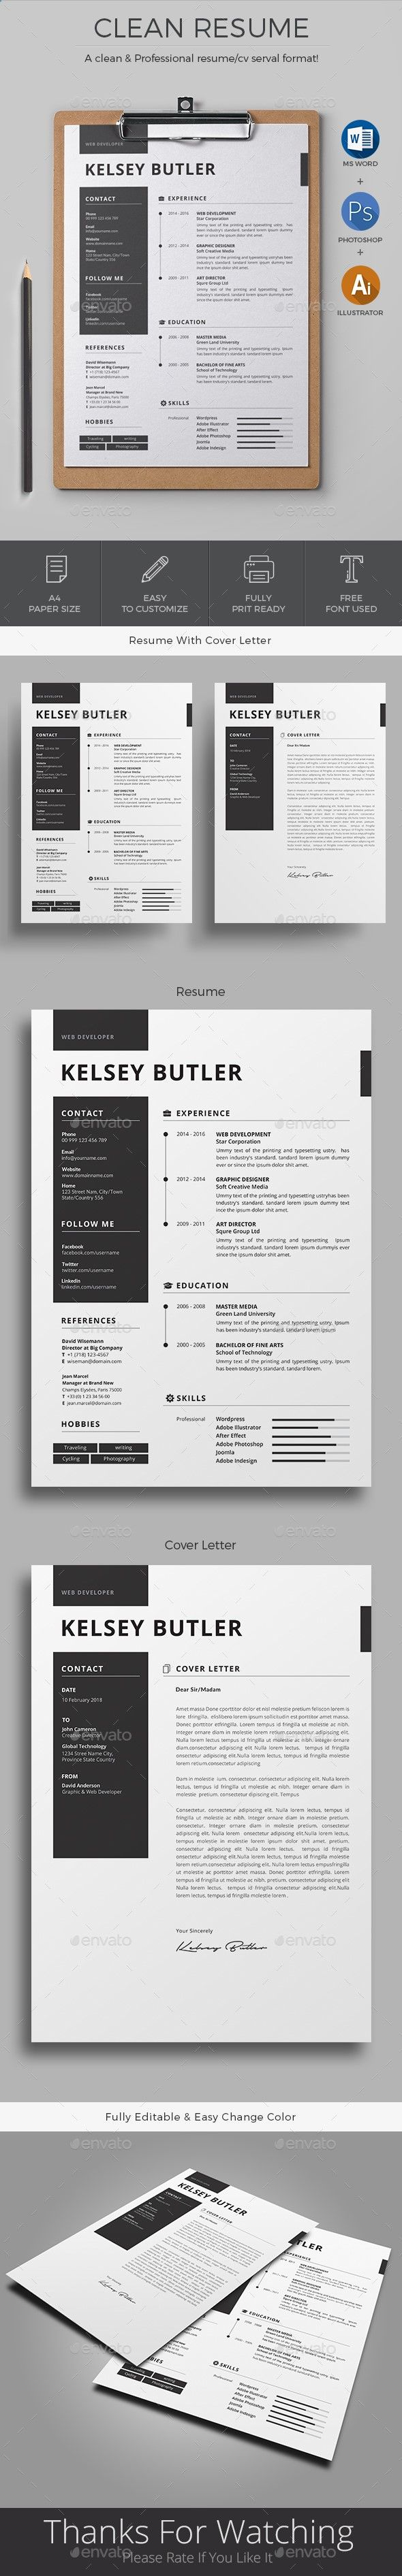 Resume Template PSD, AI, MS Word